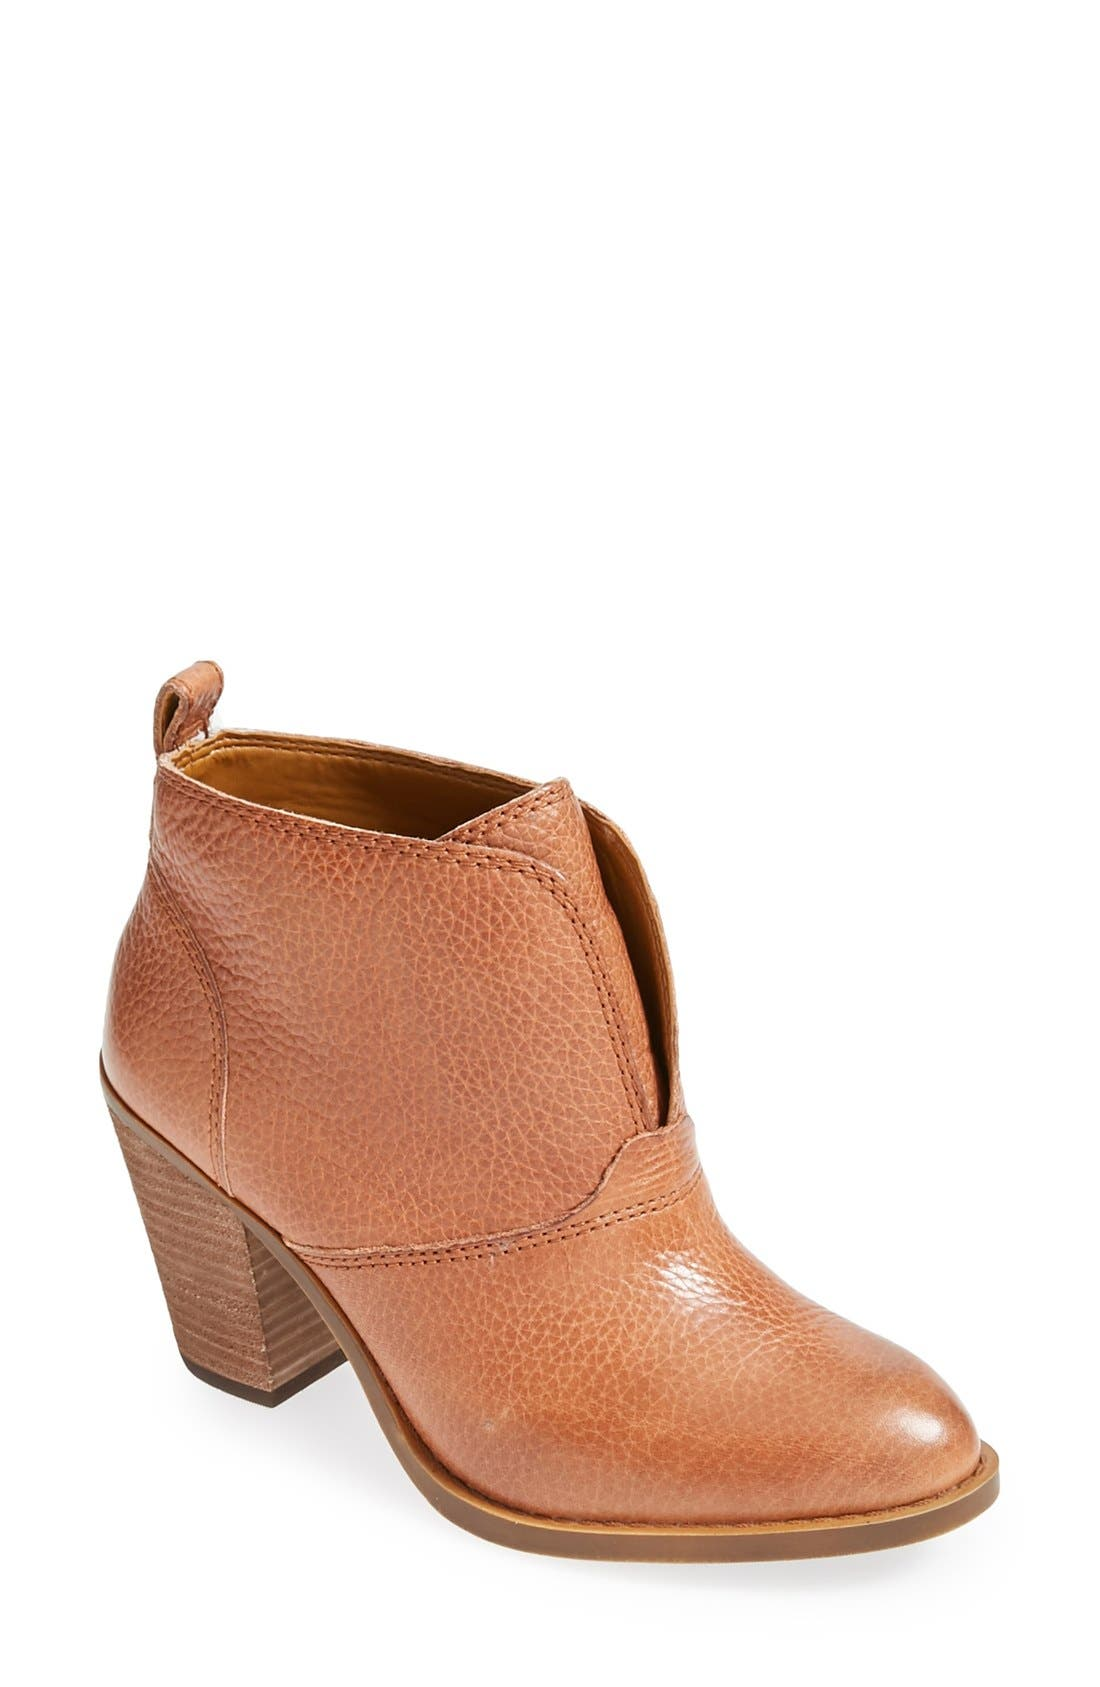 Alternate Image 1 Selected - Lucky Brand 'Ehllen' Textured Leather Bootie (Women)